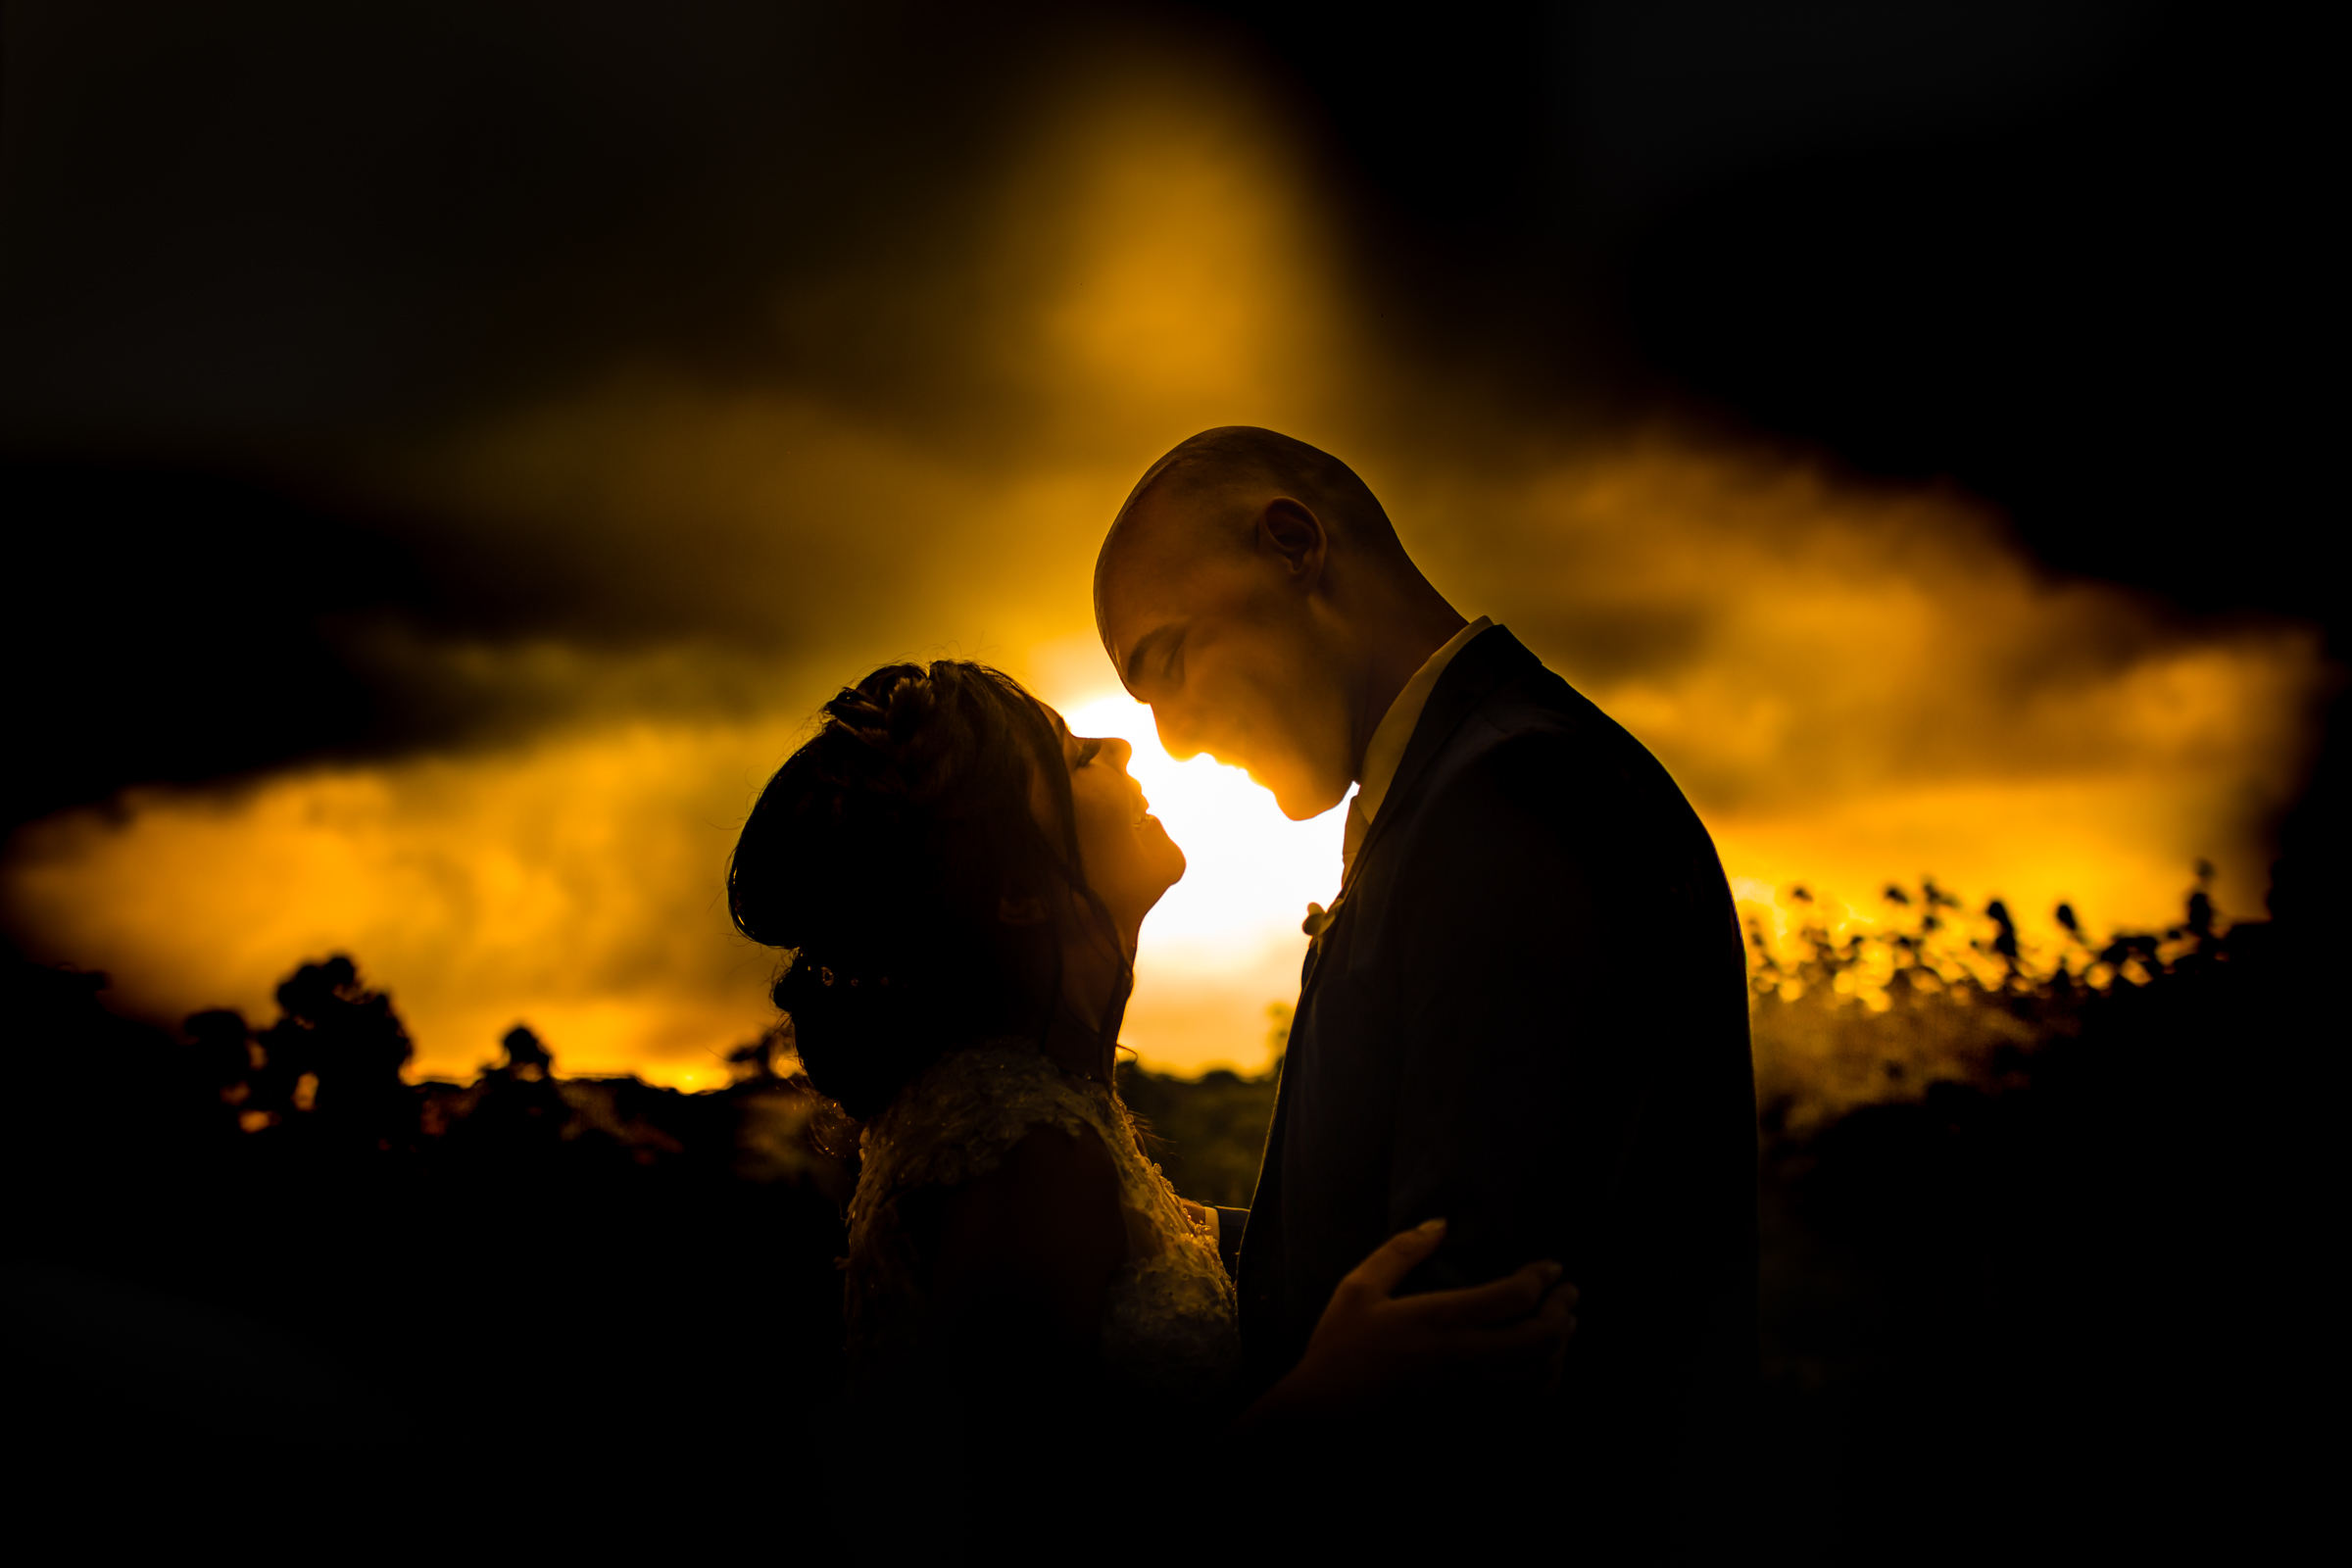 couple-getting-ready-to-kiss-against-golden-sunset-photo-by-area-da-fotografia-brazil